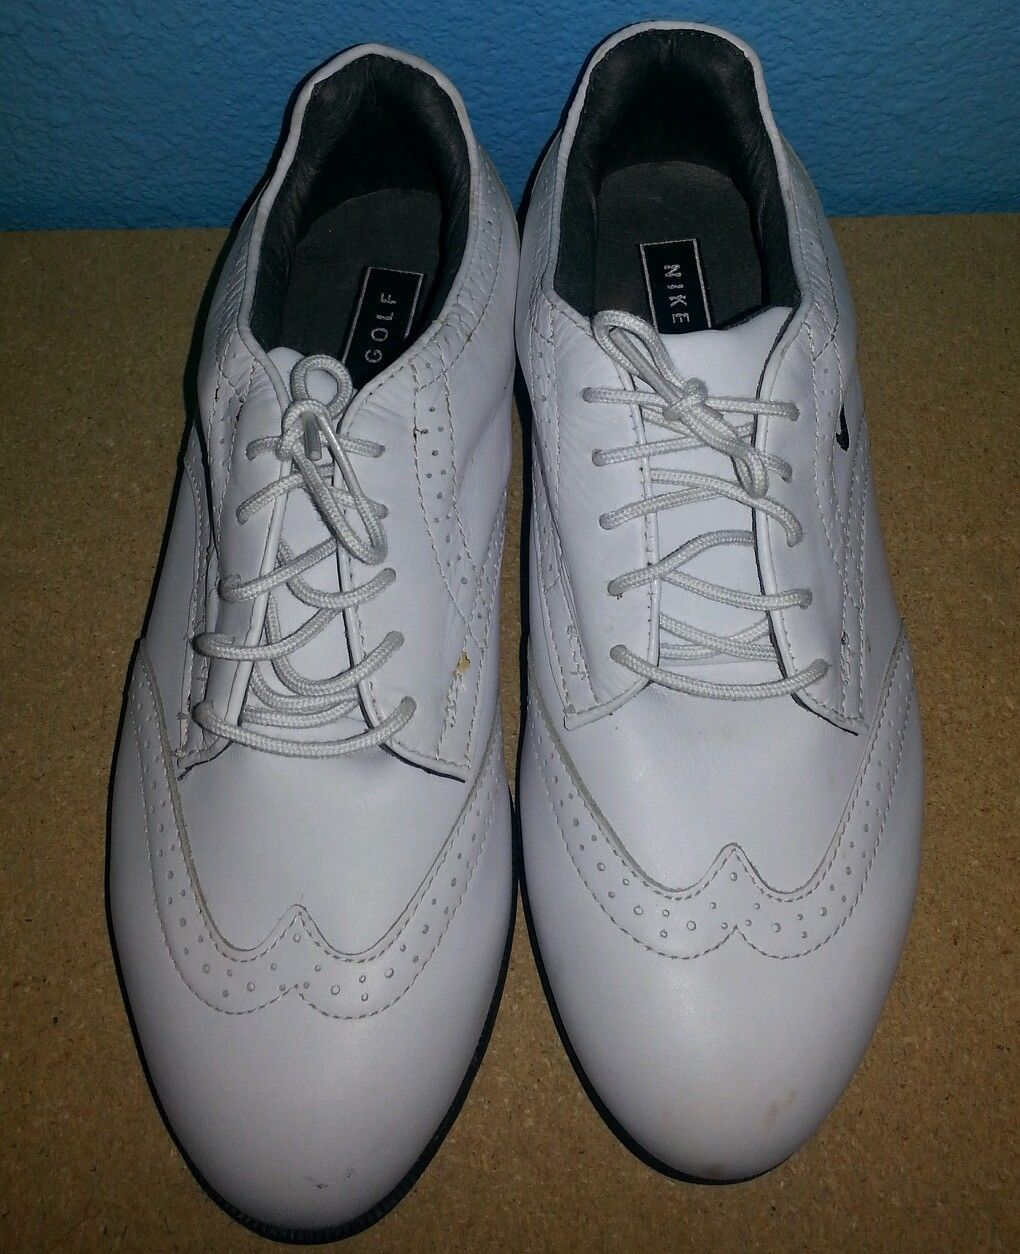 Classic Nike Men`s White Wing Tip Golf Shoes With Soft Spikes-Size 8EE